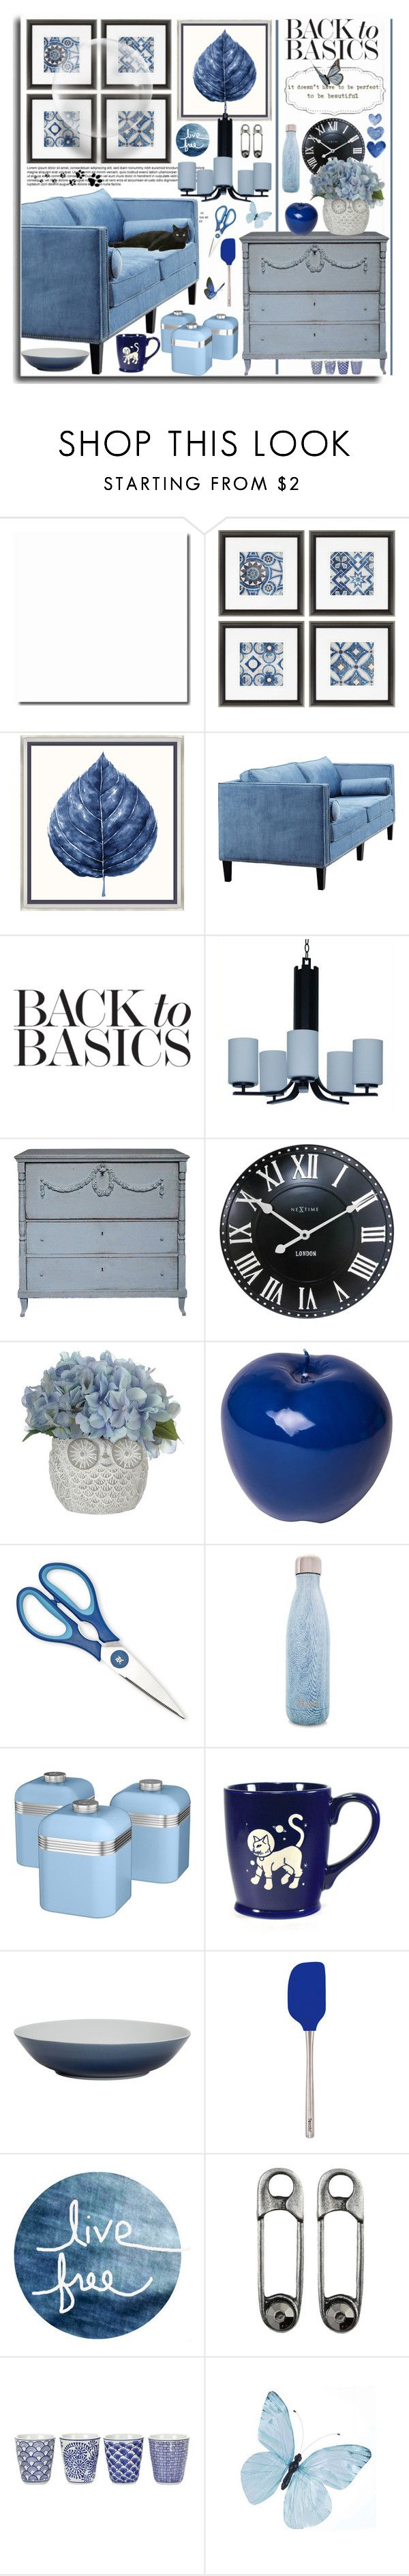 Best Images About Colors Blue Indigo Navy On   Barclay Home Design